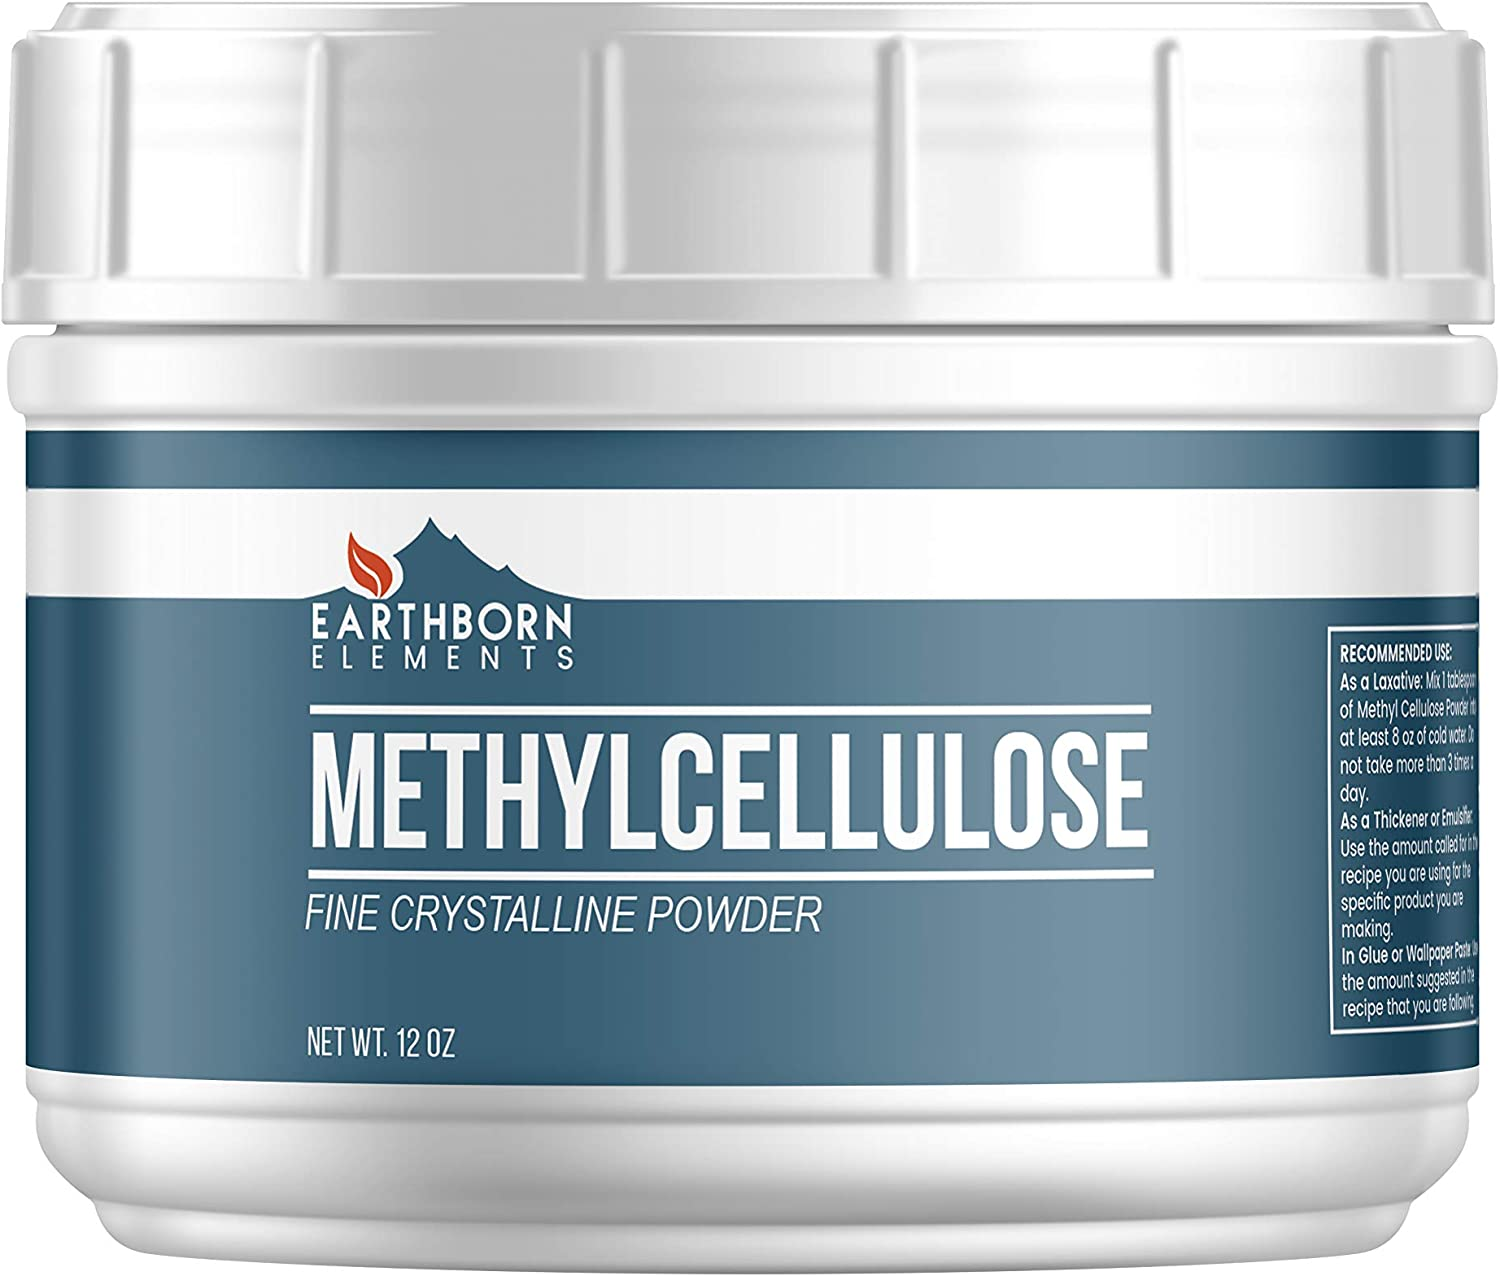 Methylcellulose Powder (12 oz Tub) Food Grade, Laxative, Thickener, Buffer Additive, Used to Make Glue & Wallpaper Paste. Contains No Emulsifiers or Mix-Aid Chemicals, Vegan-Friendly